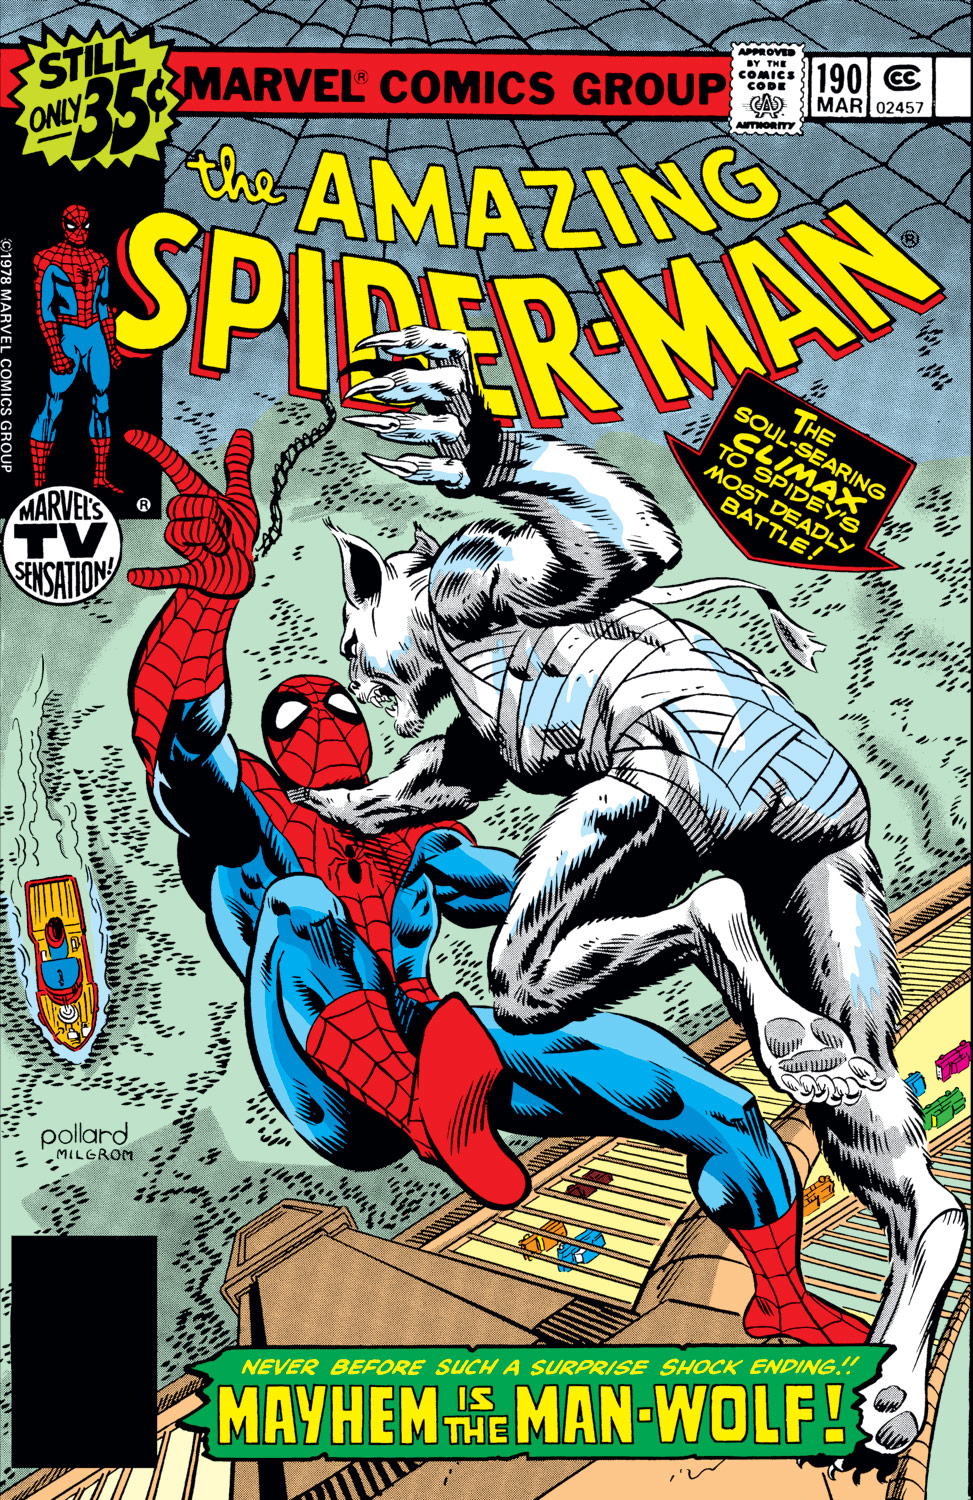 The Amazing Spider-Man (1963) #190